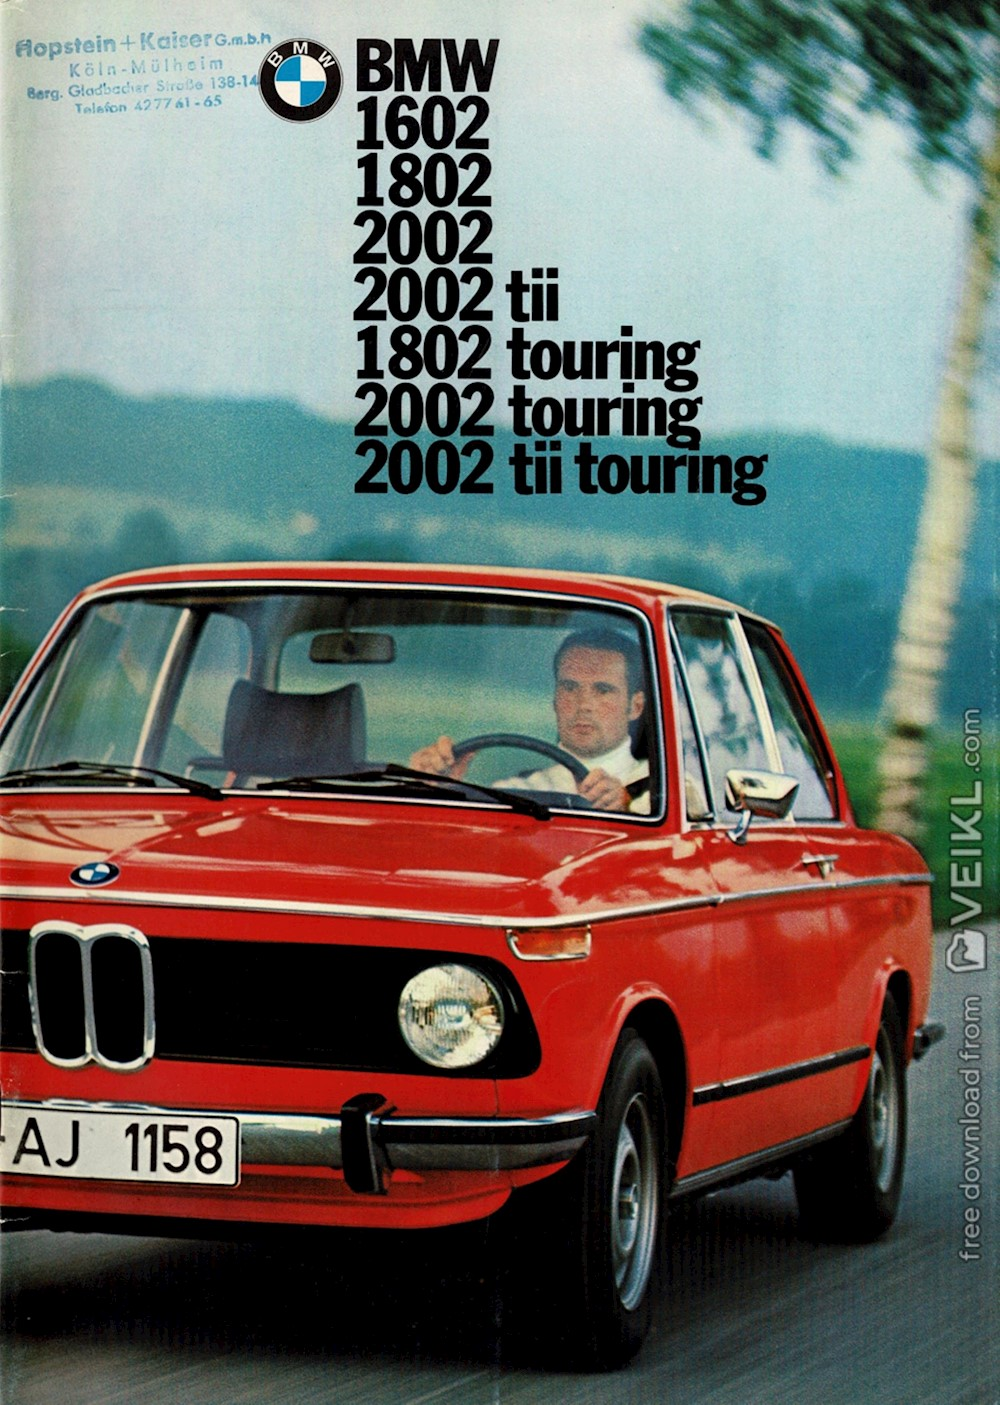 BMW 02 Series and BMW Touring Brochure 1974 DE